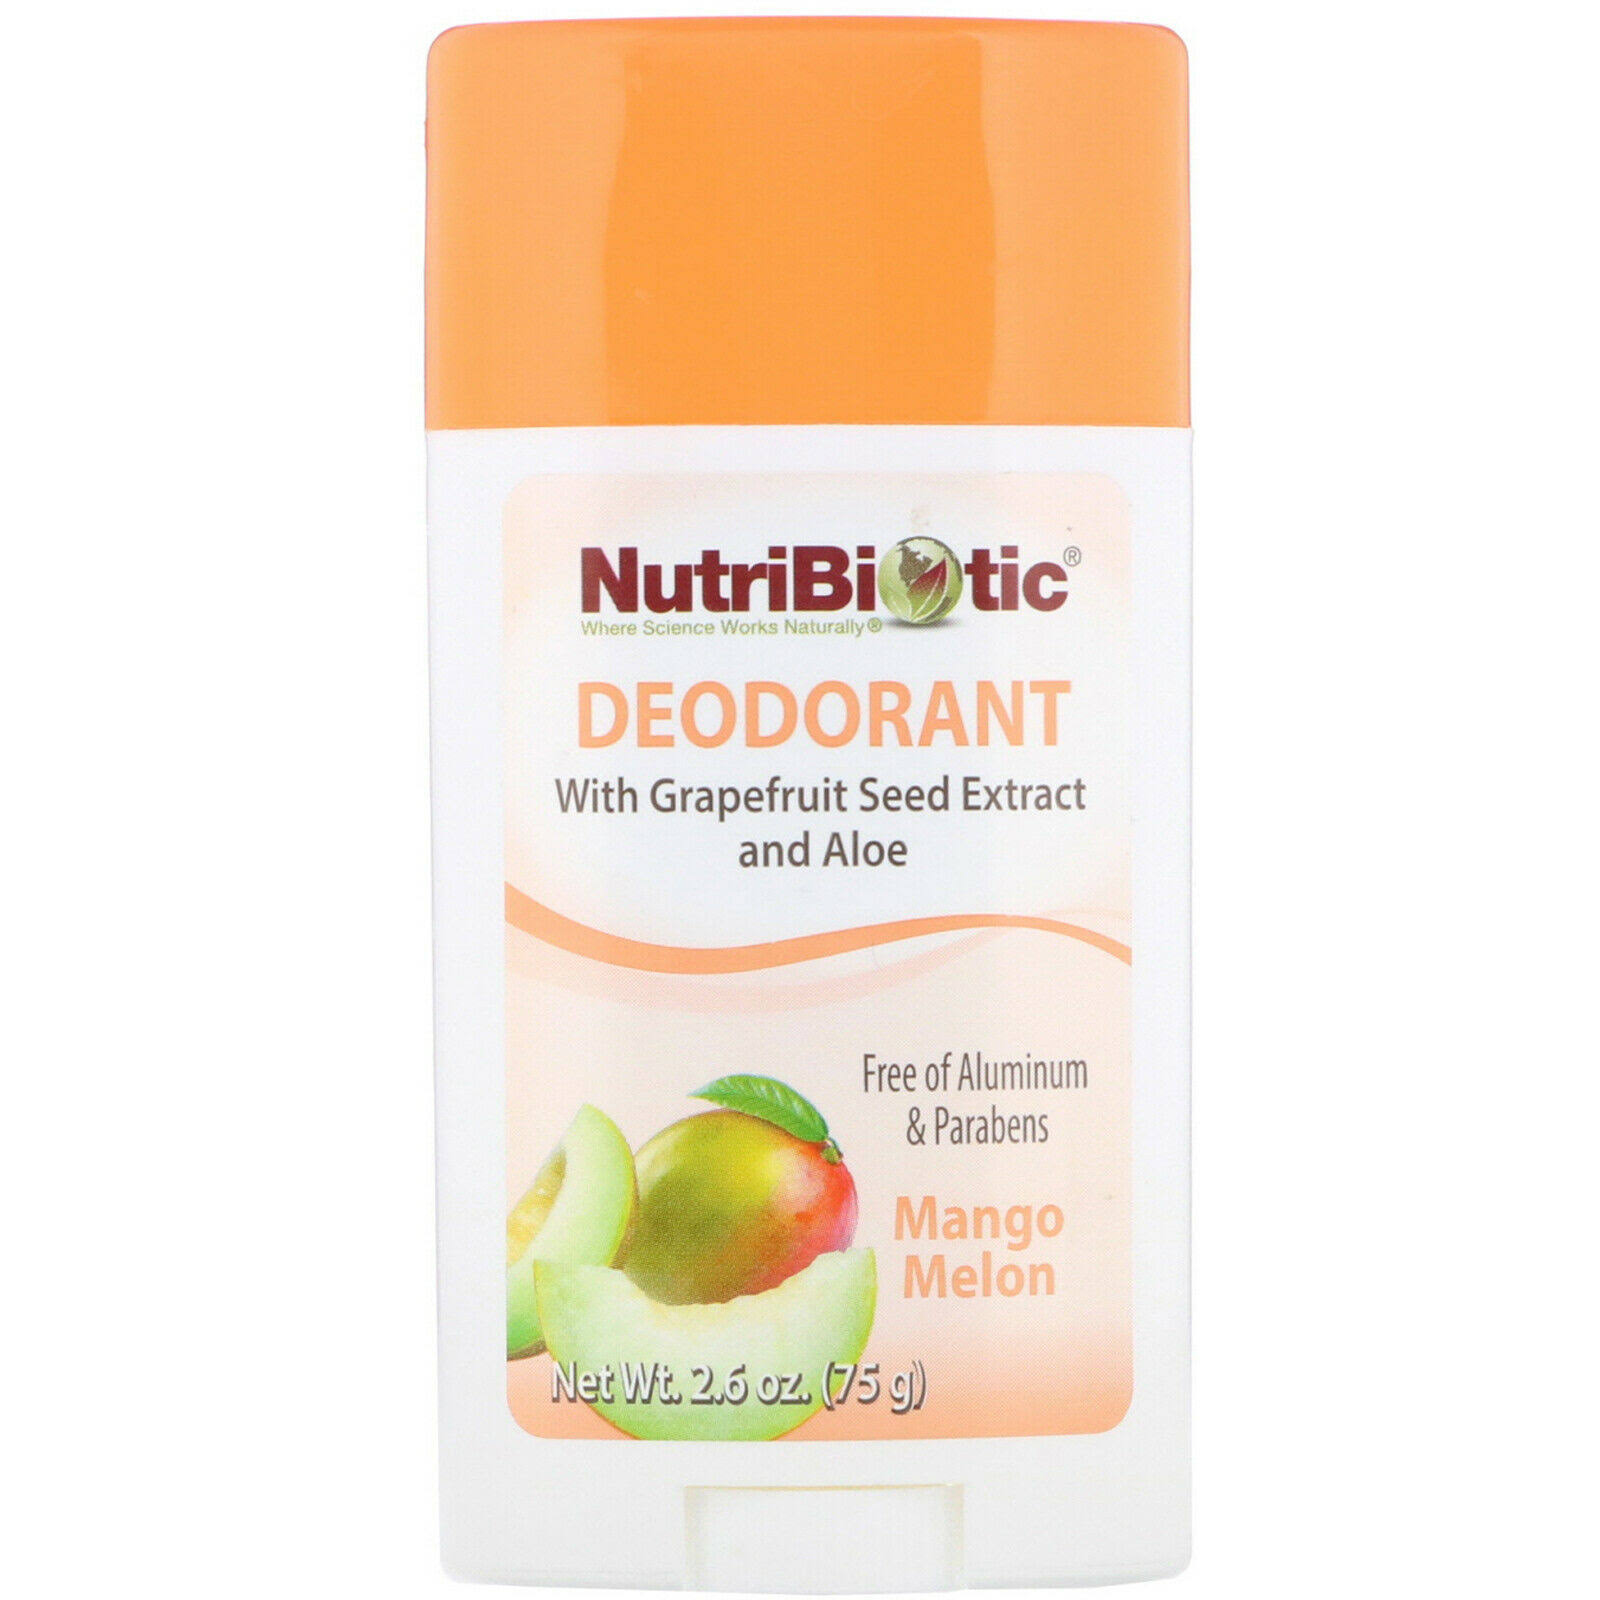 Nutribiotic Deodorant - Mango Melon, 2.6oz